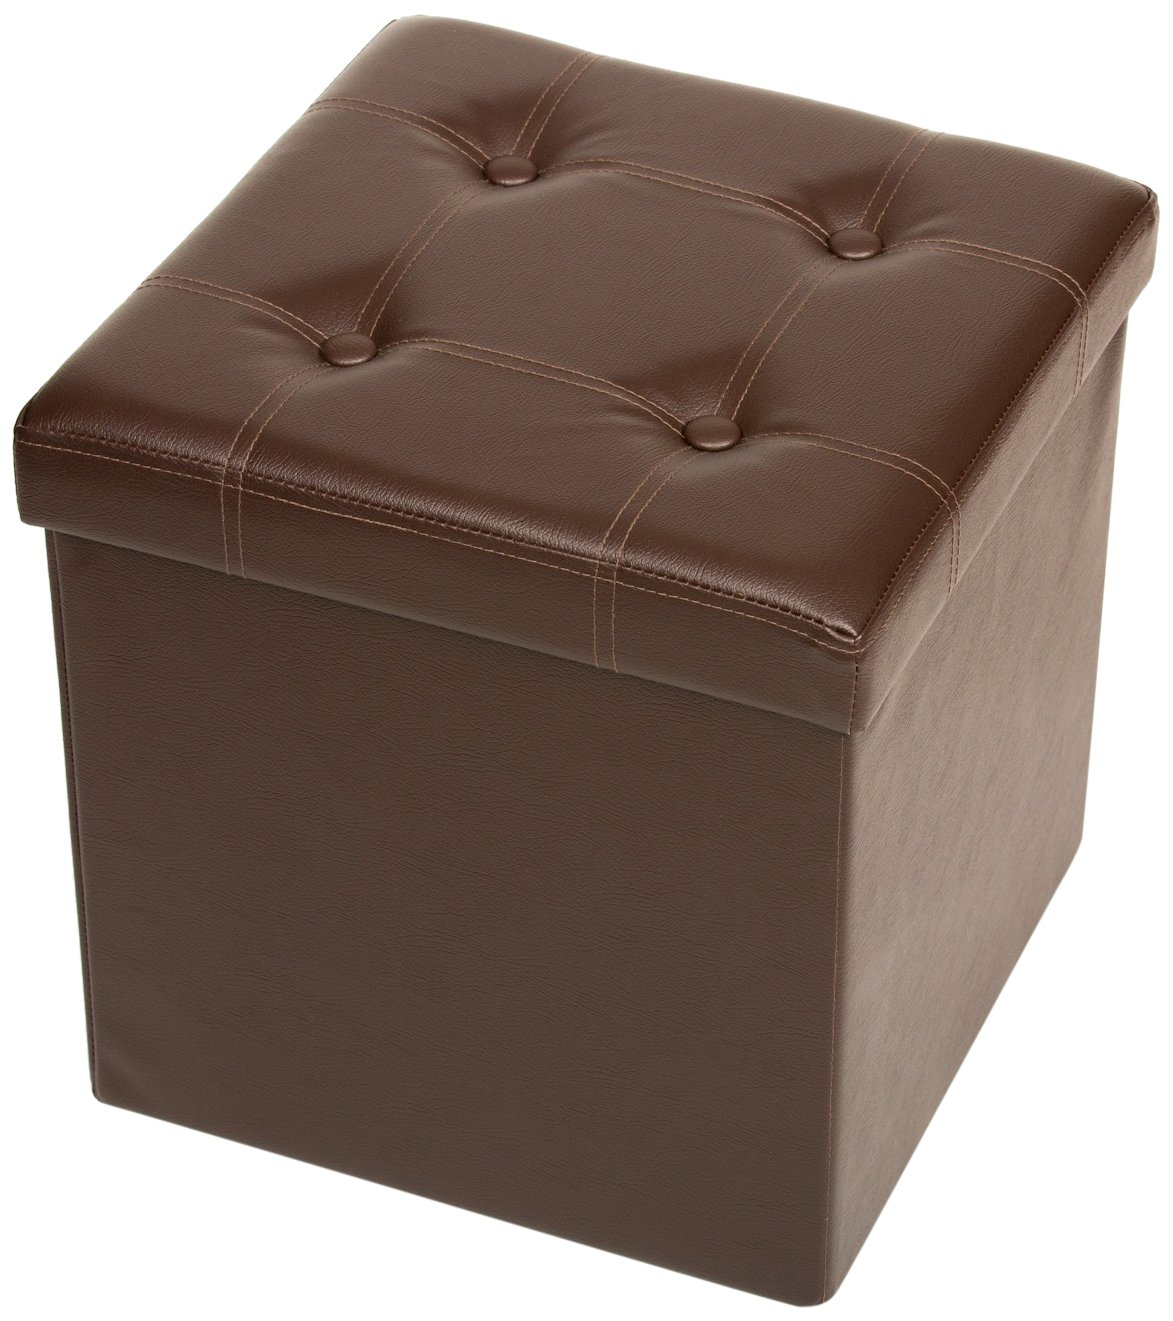 Miraculous Fresh Home Elements Tufted Storage Ottoman Folding Alphanode Cool Chair Designs And Ideas Alphanodeonline